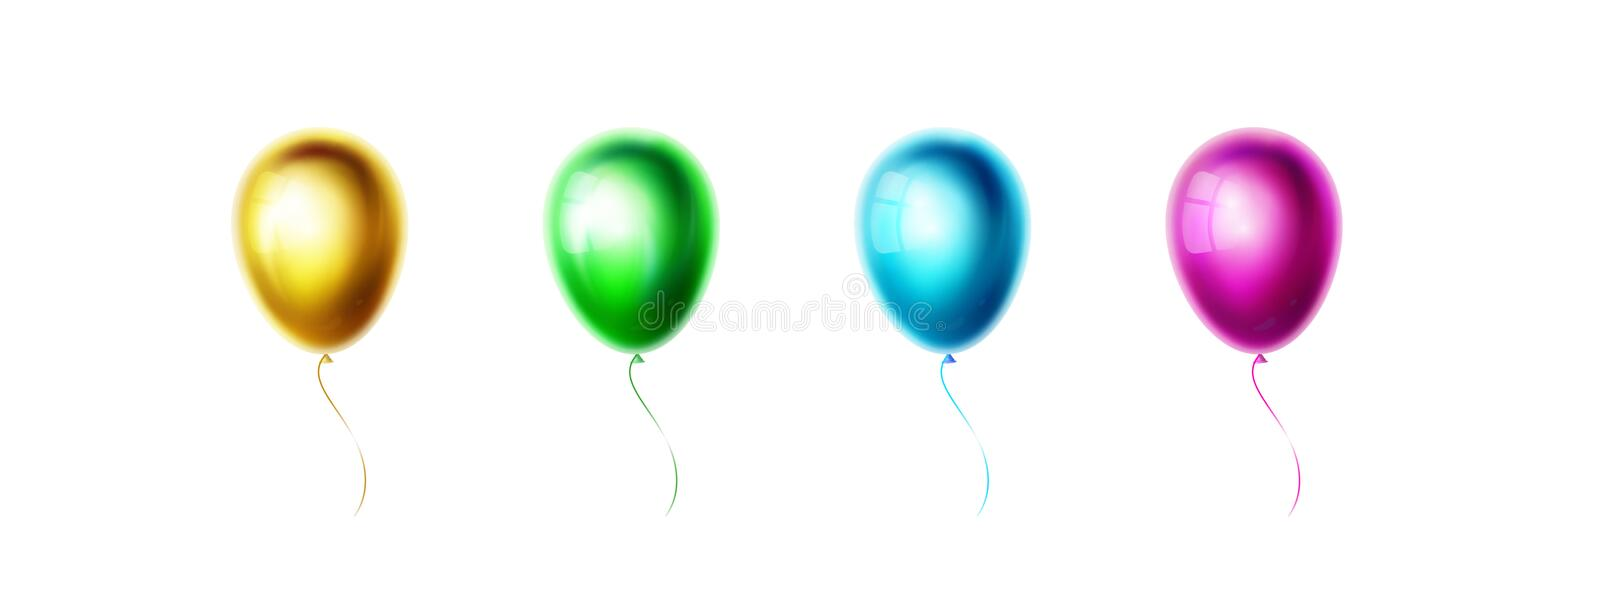 Gold, green, blue, purple balloons isolated on white background. Realistic color glossy and shiny helium ballon for royalty free illustration